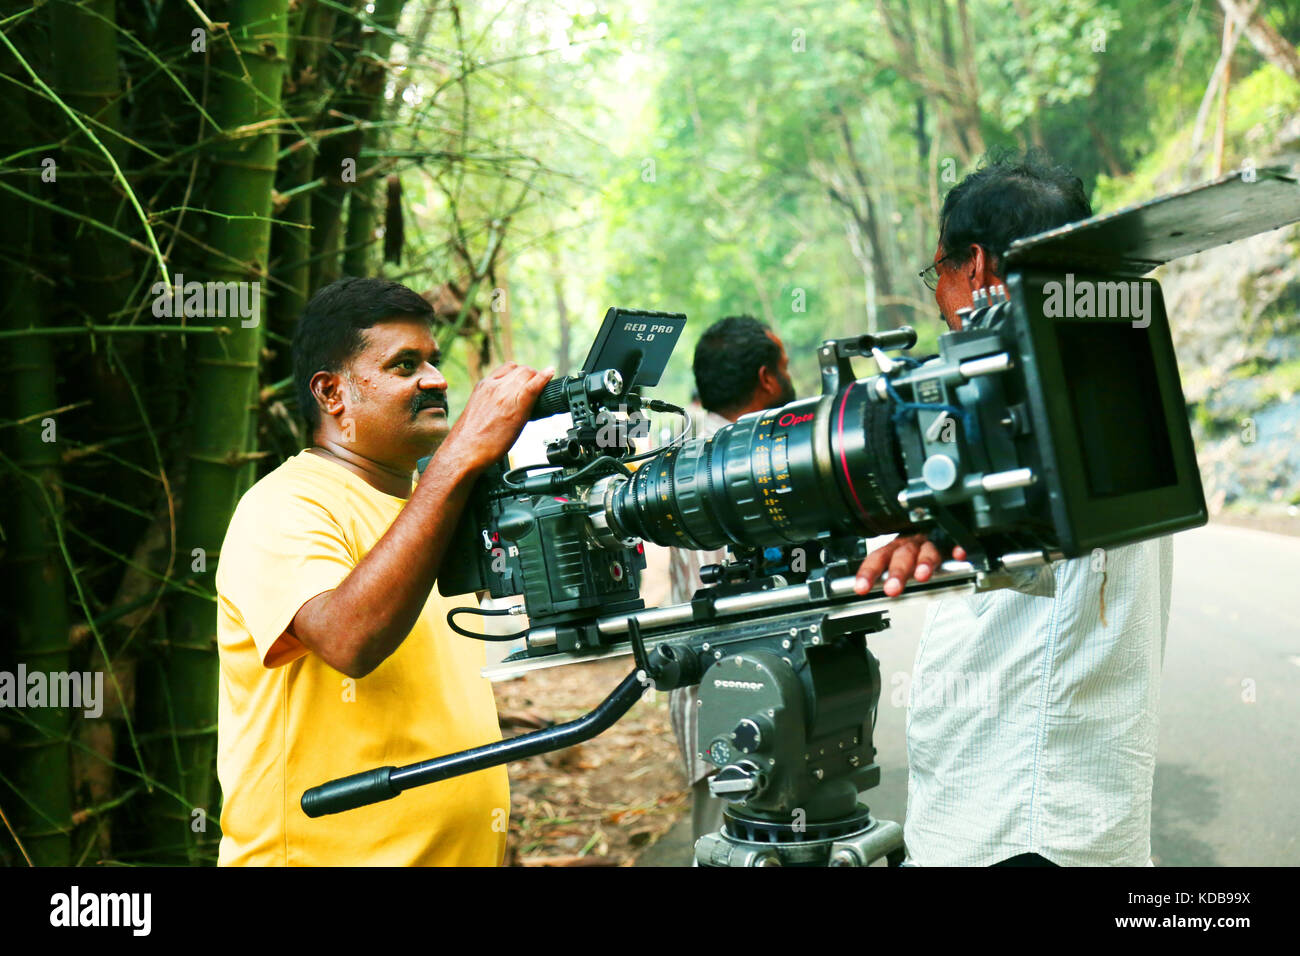 Video camera operator on nature background, film shooting spot - Stock Image